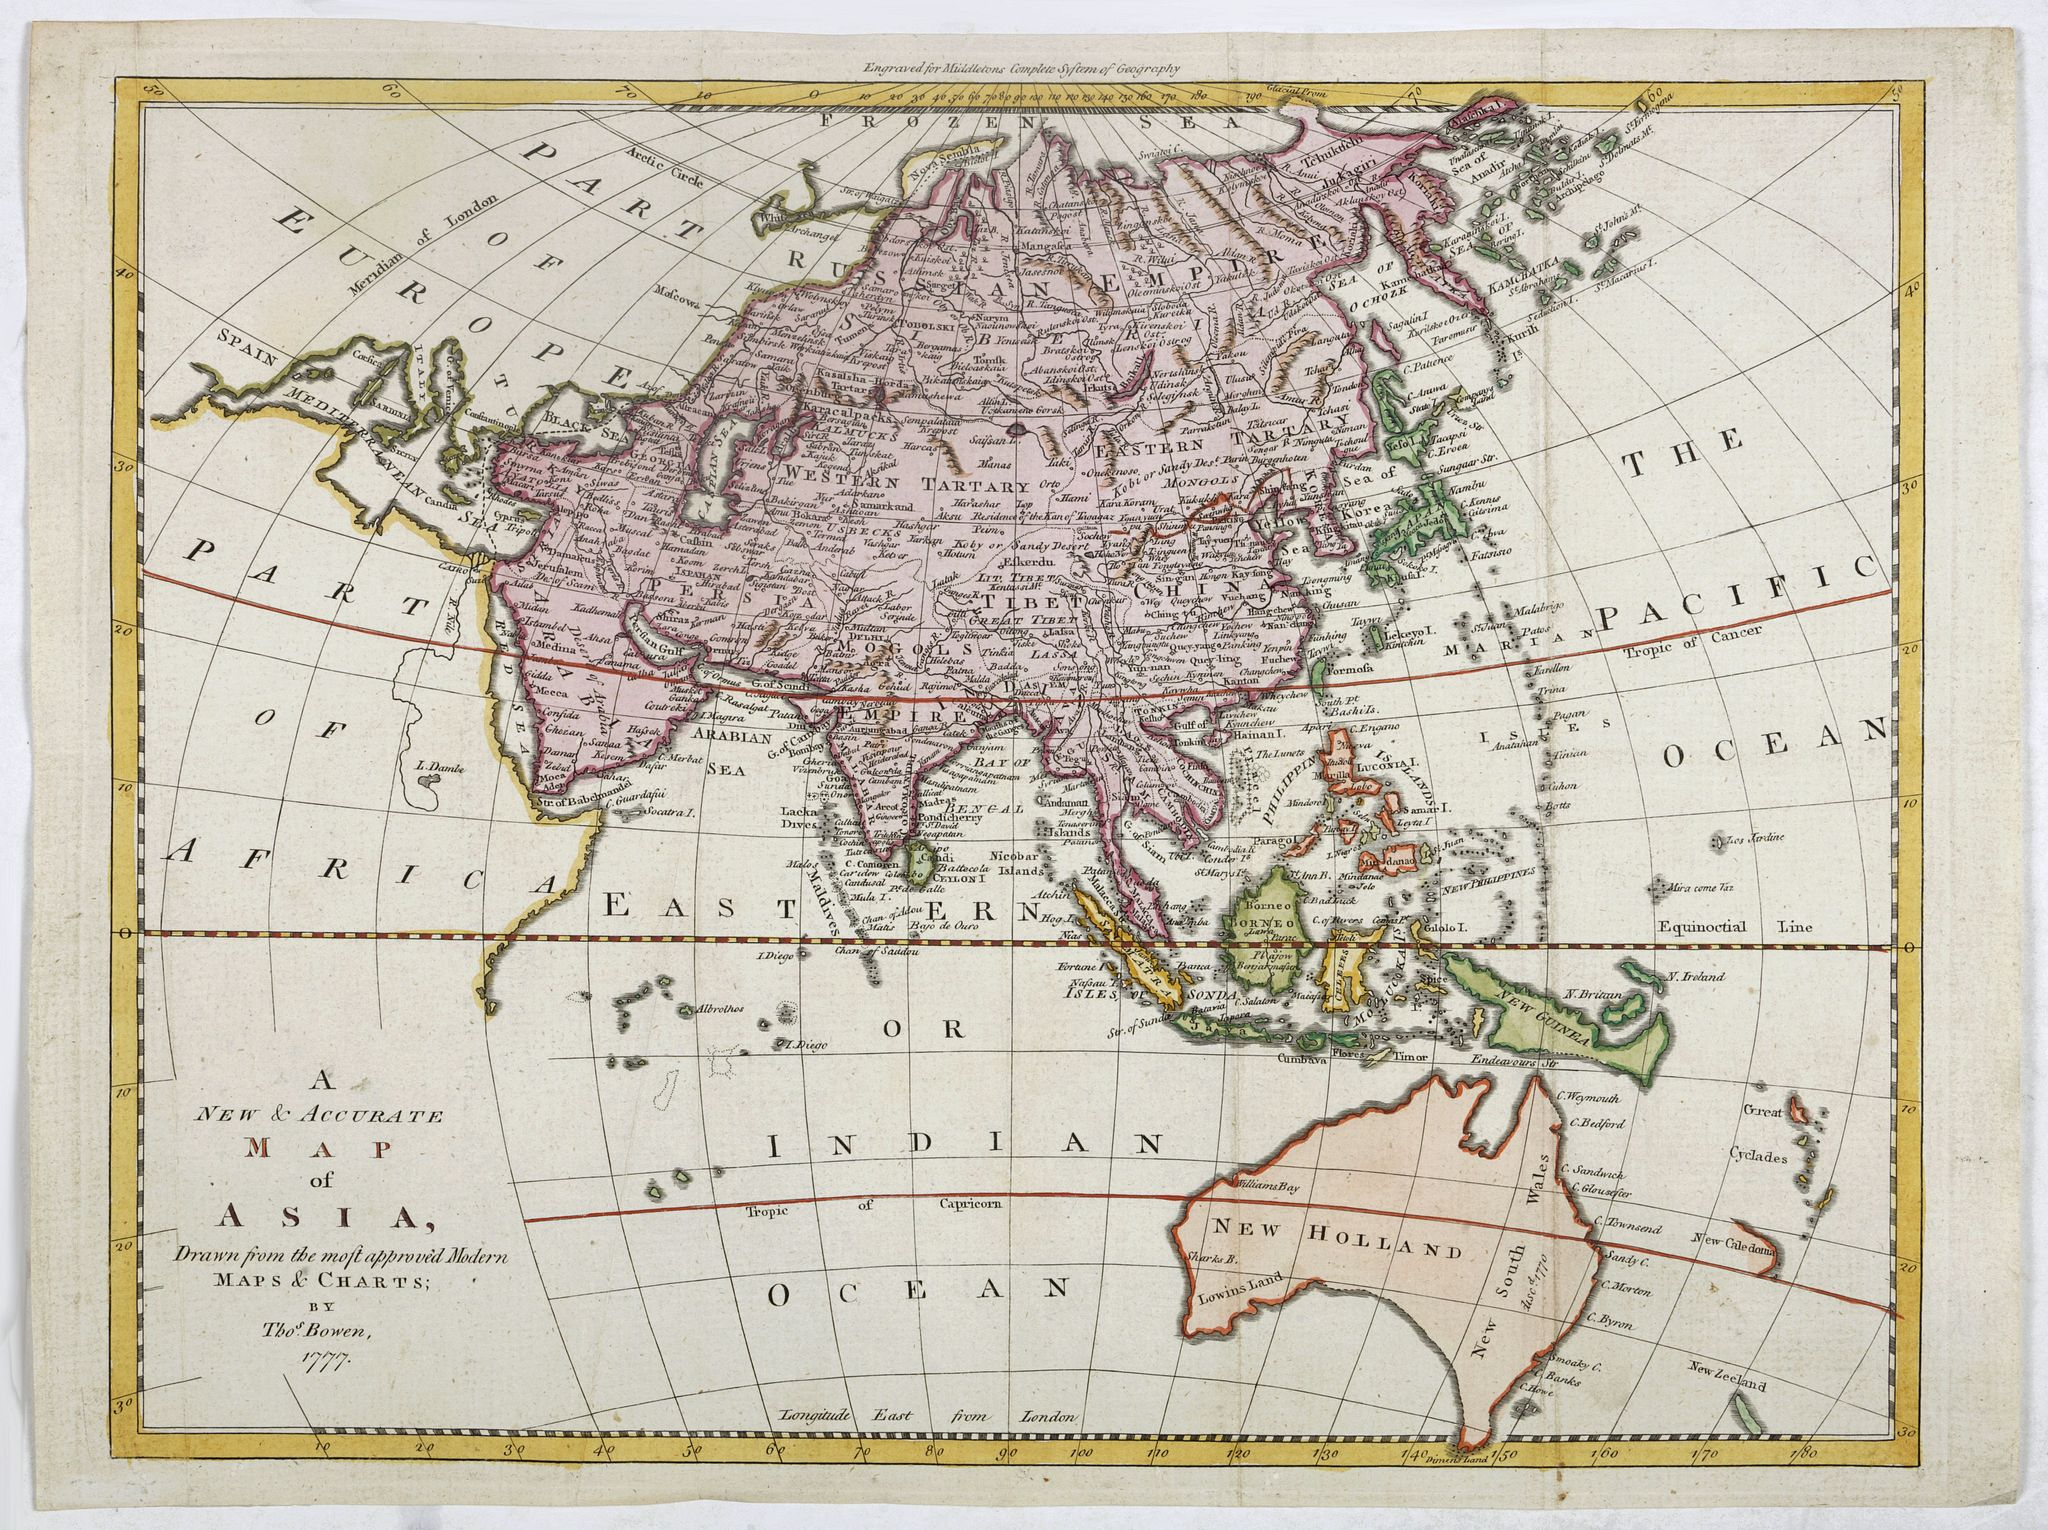 BOWEN, Th. -  A new & accurate map of Asia, Drawn from the most approved modern maps & charts.